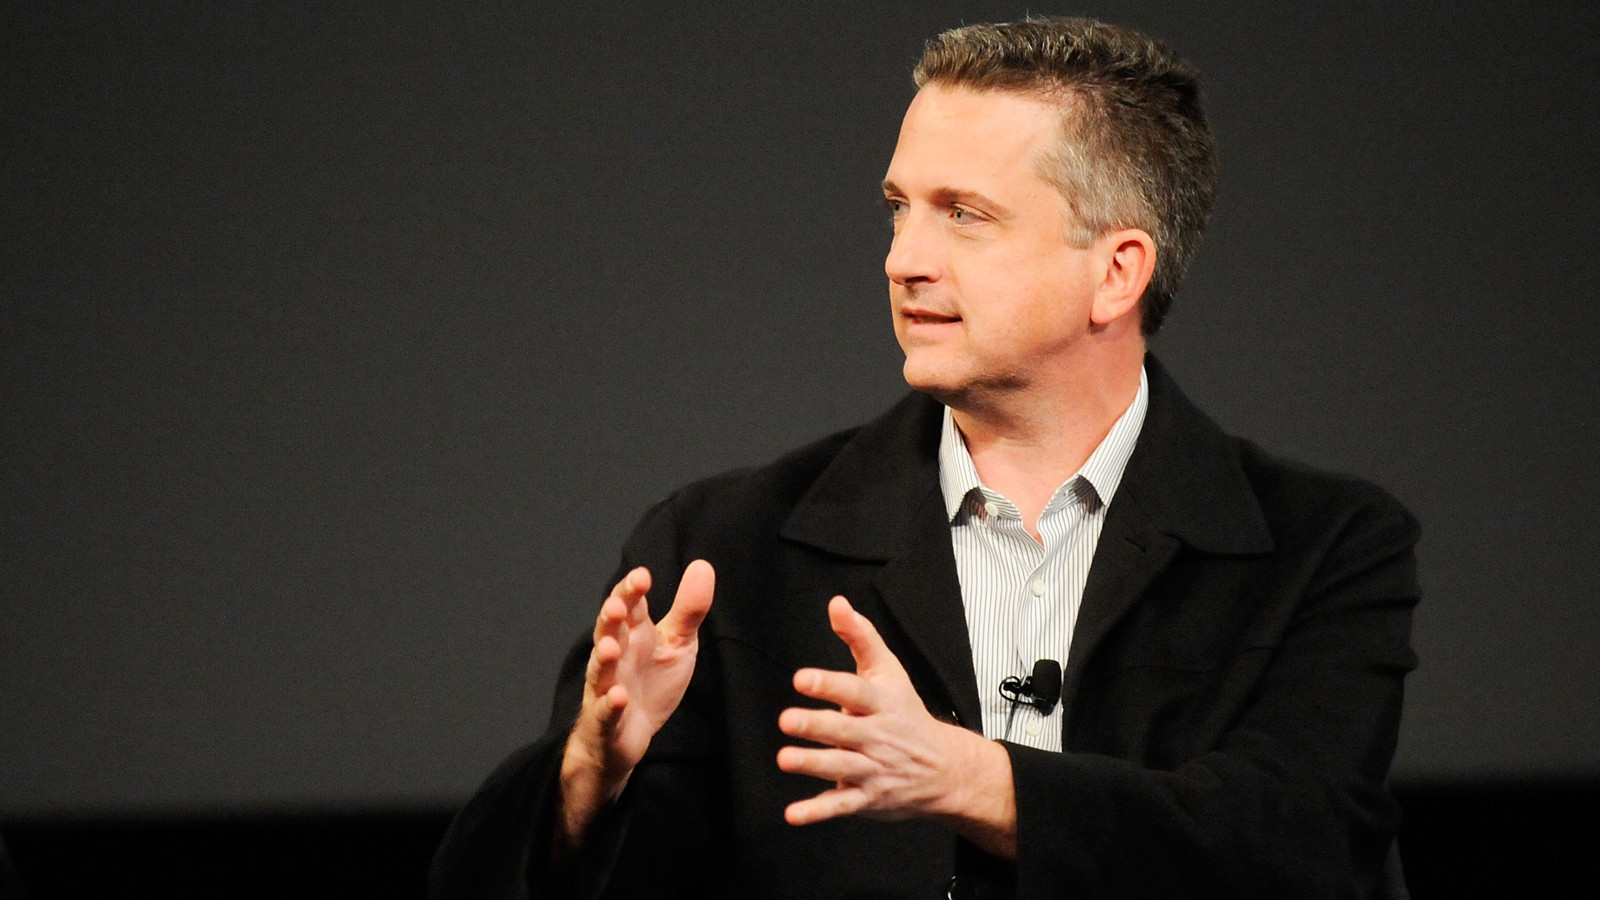 ESPN's Bill Simmons suspended for Goodell rant; barred from Twitter